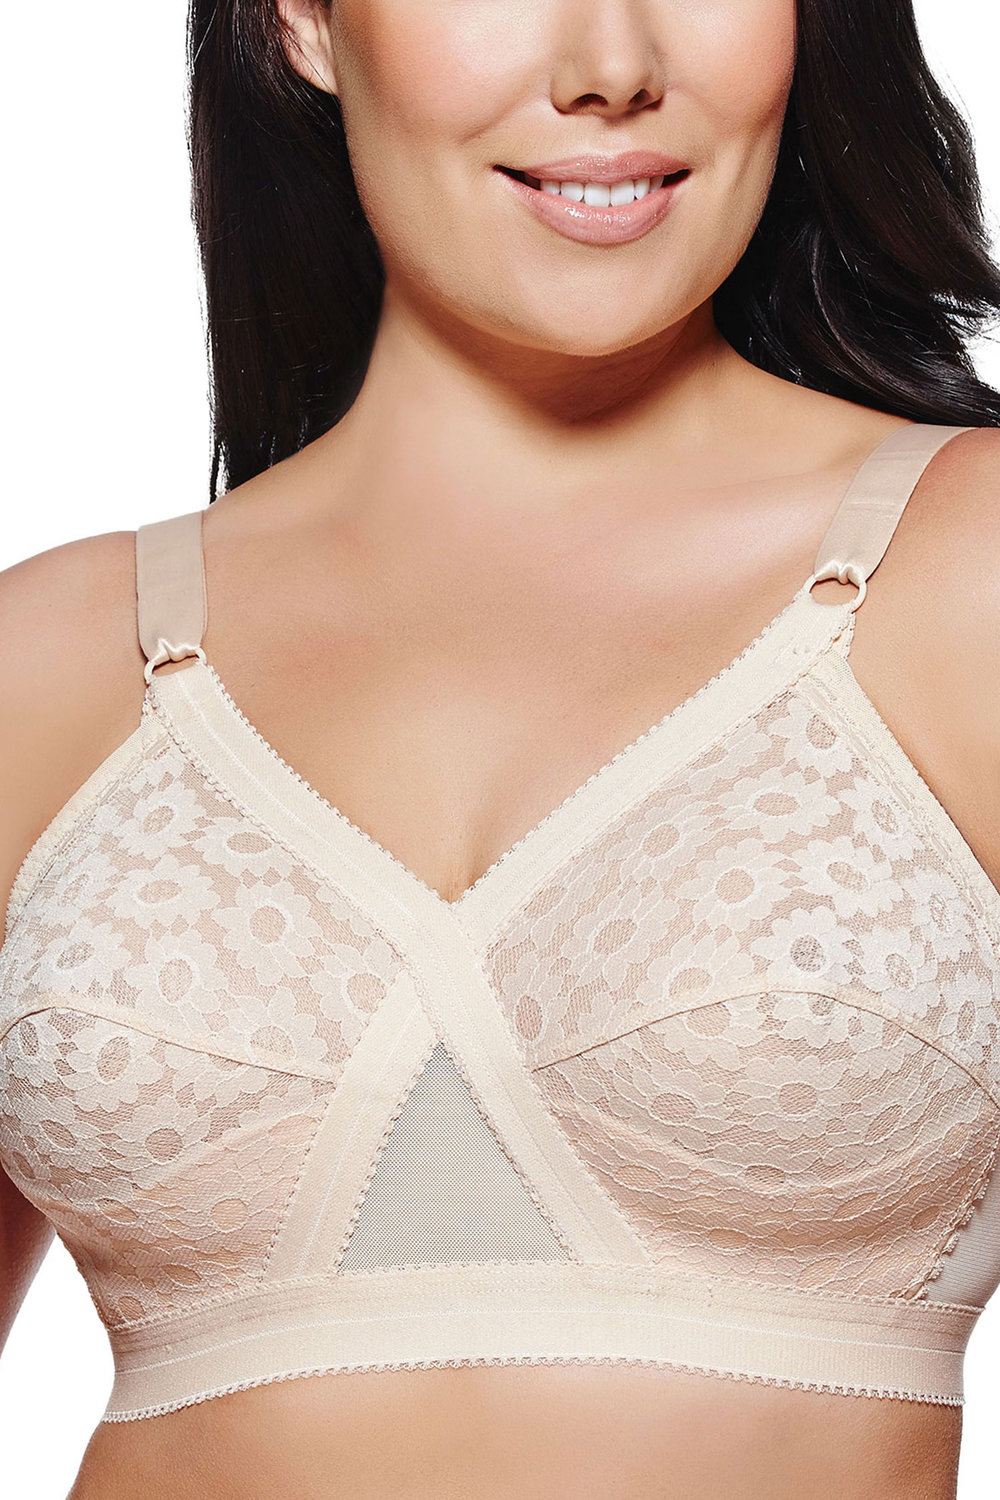 f5837bfc63f Playtex Cross Your Heart Wirefree Bra Online